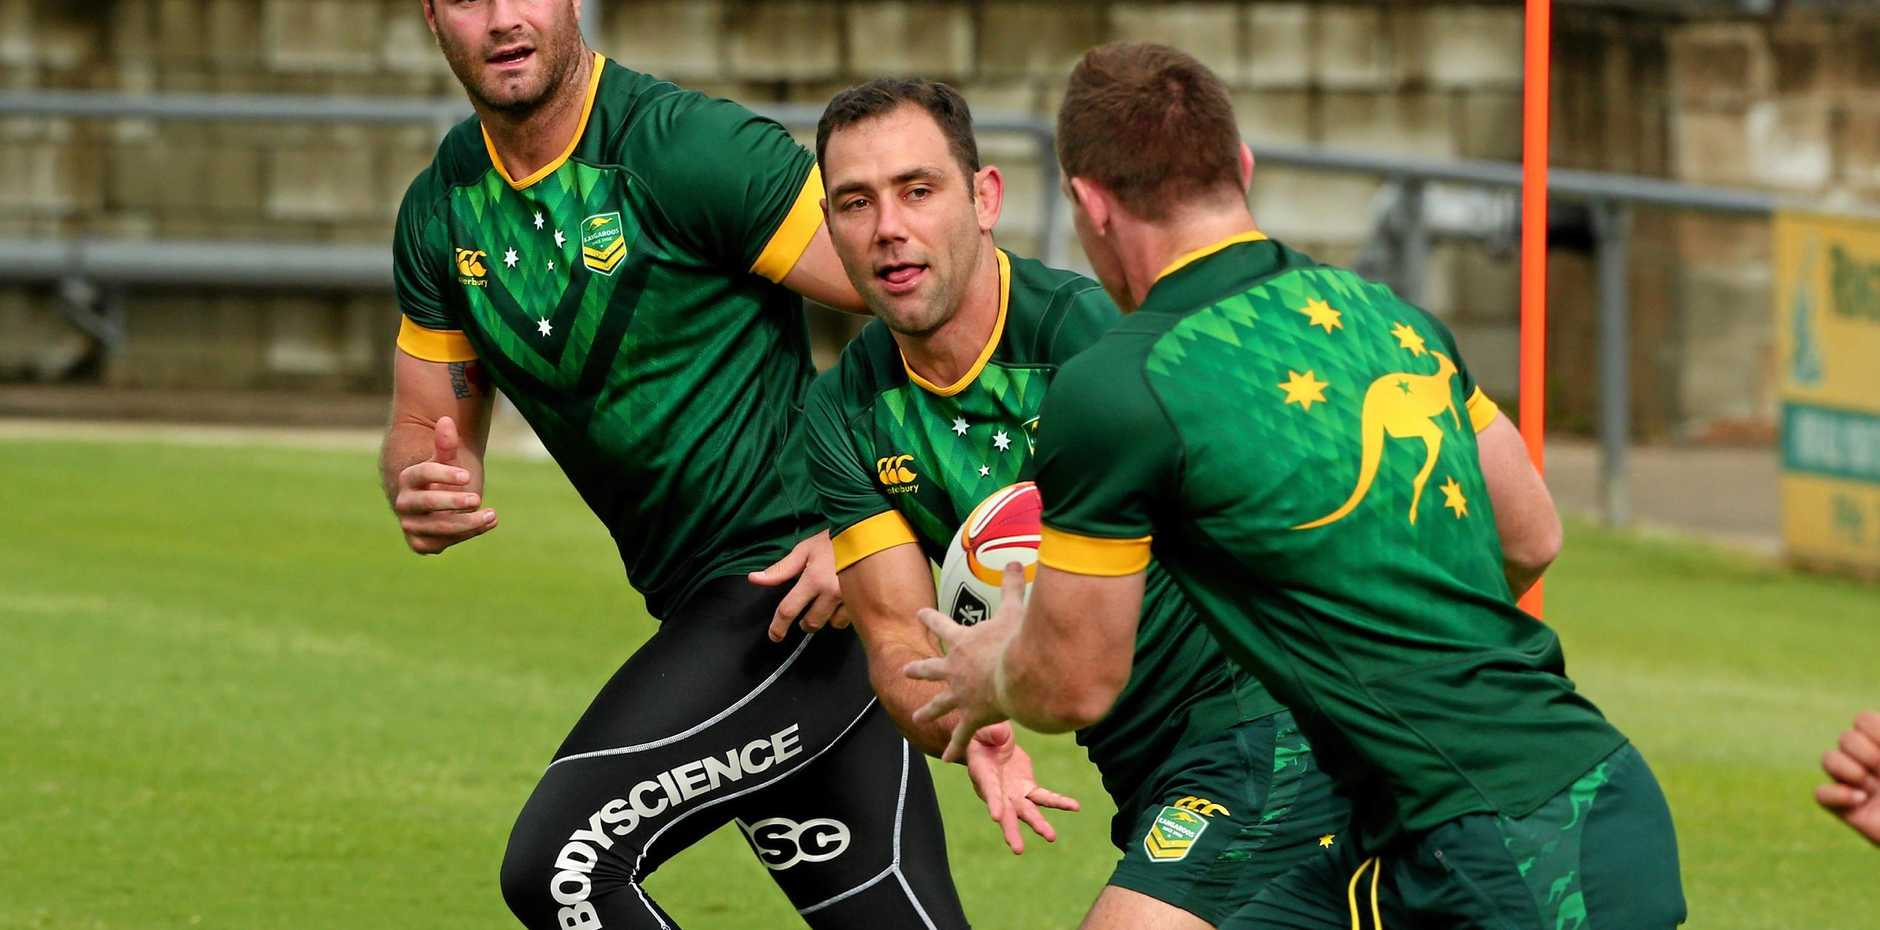 Kangaroos Boyd Cordner, Cameron Smith and Cooper Cronk go through their paces at a training session ahead of the World Cup decider against England.